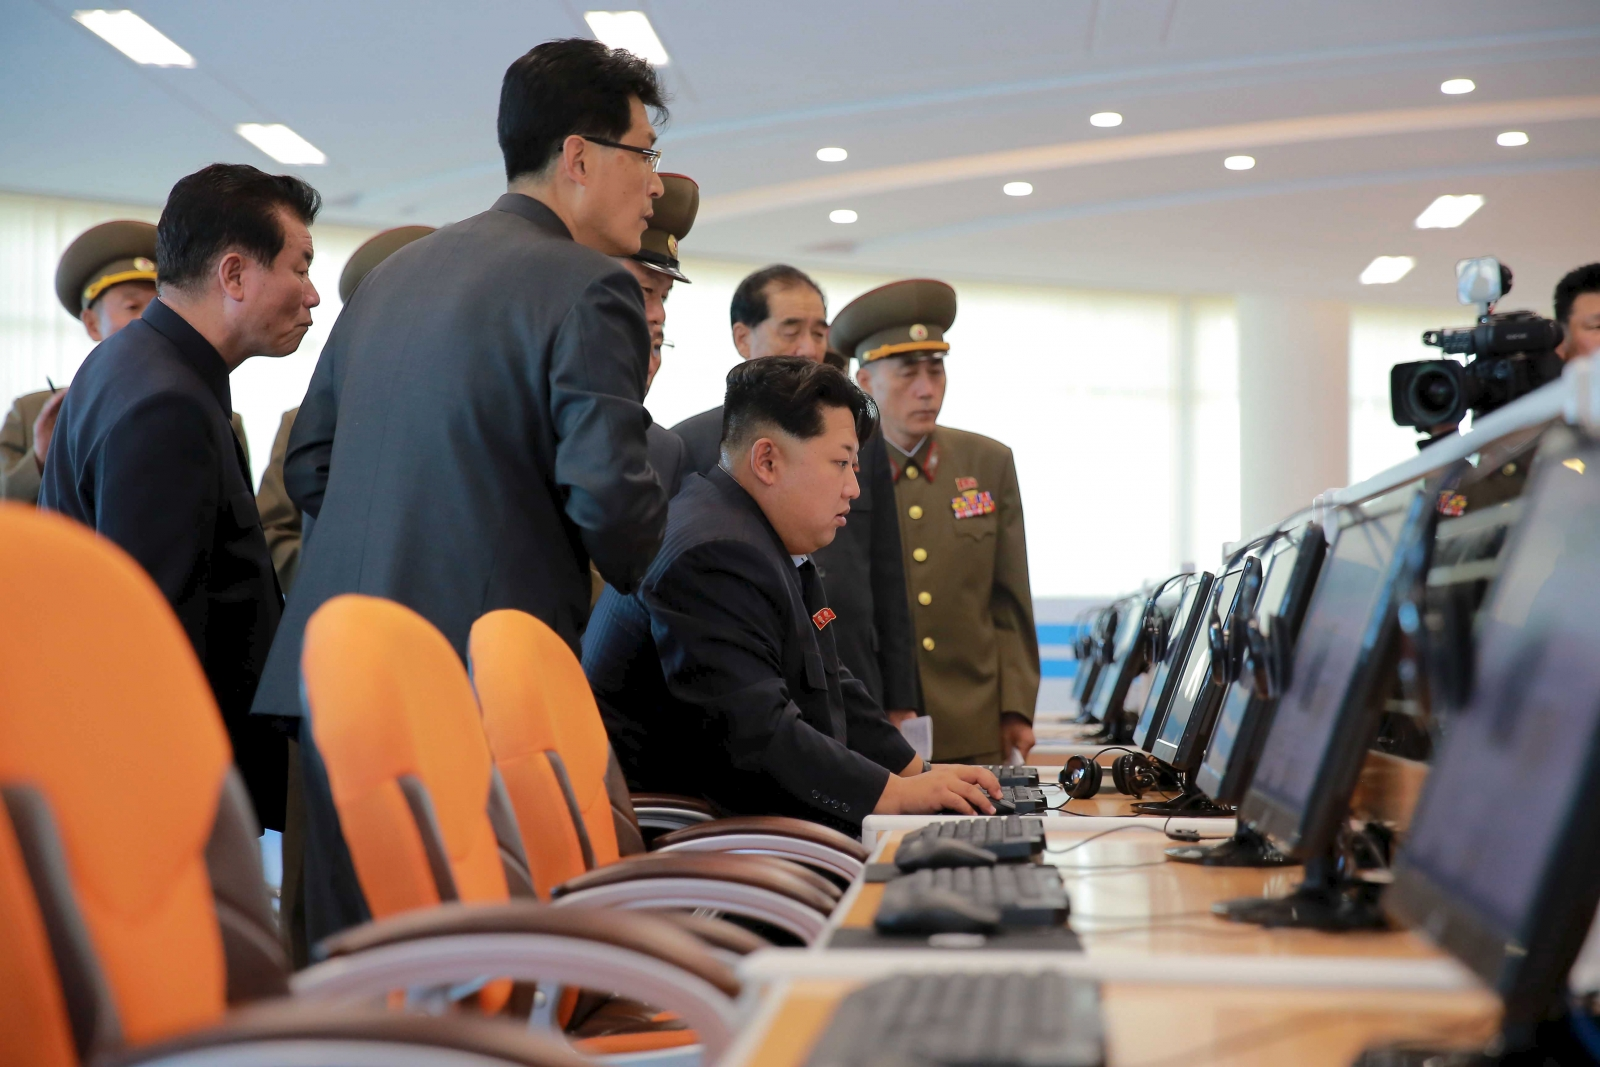 North Korea's government sanctioned Red Star OS can be remotely hacked, say security researchers